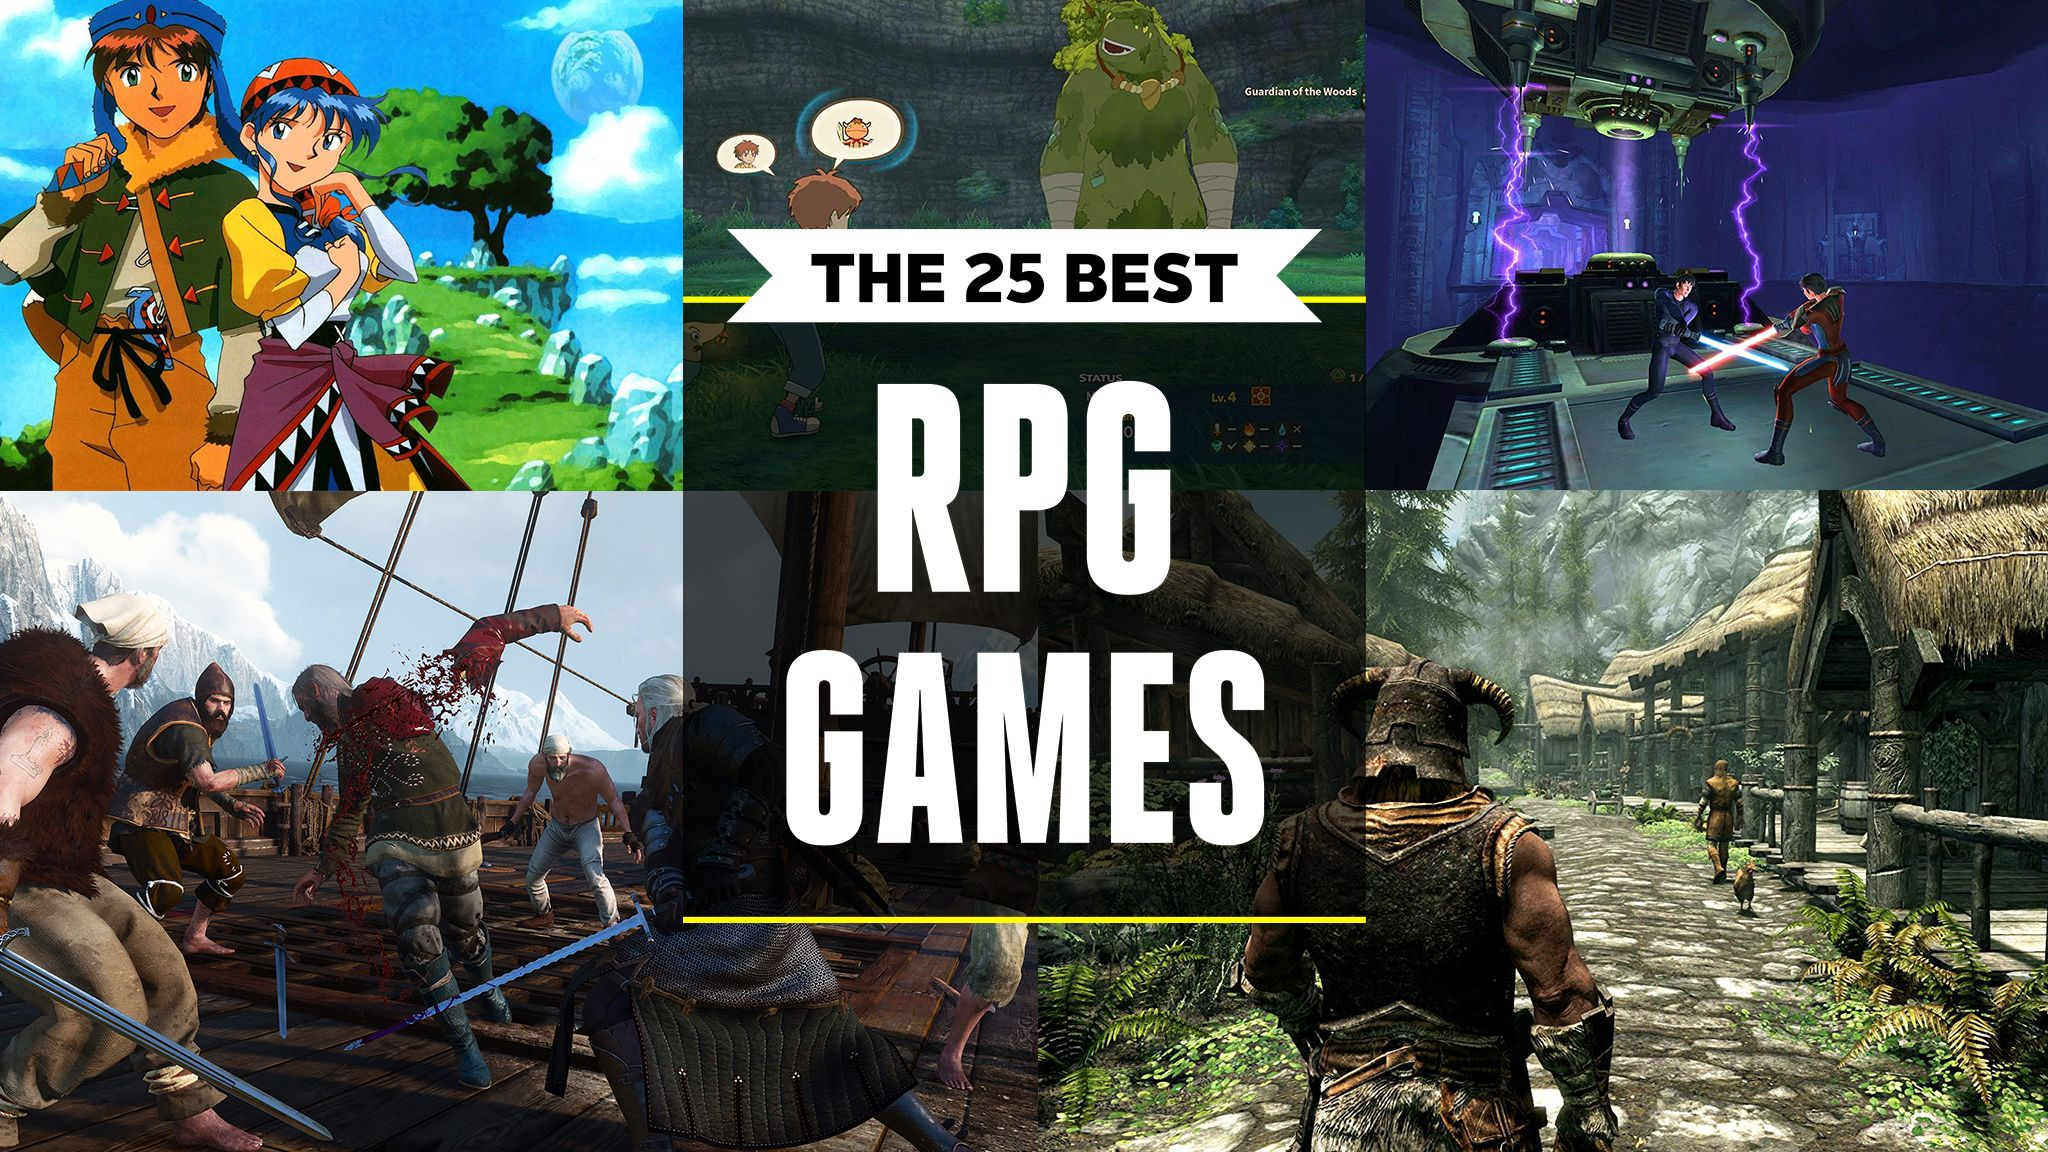 The 25 Best RPG Games